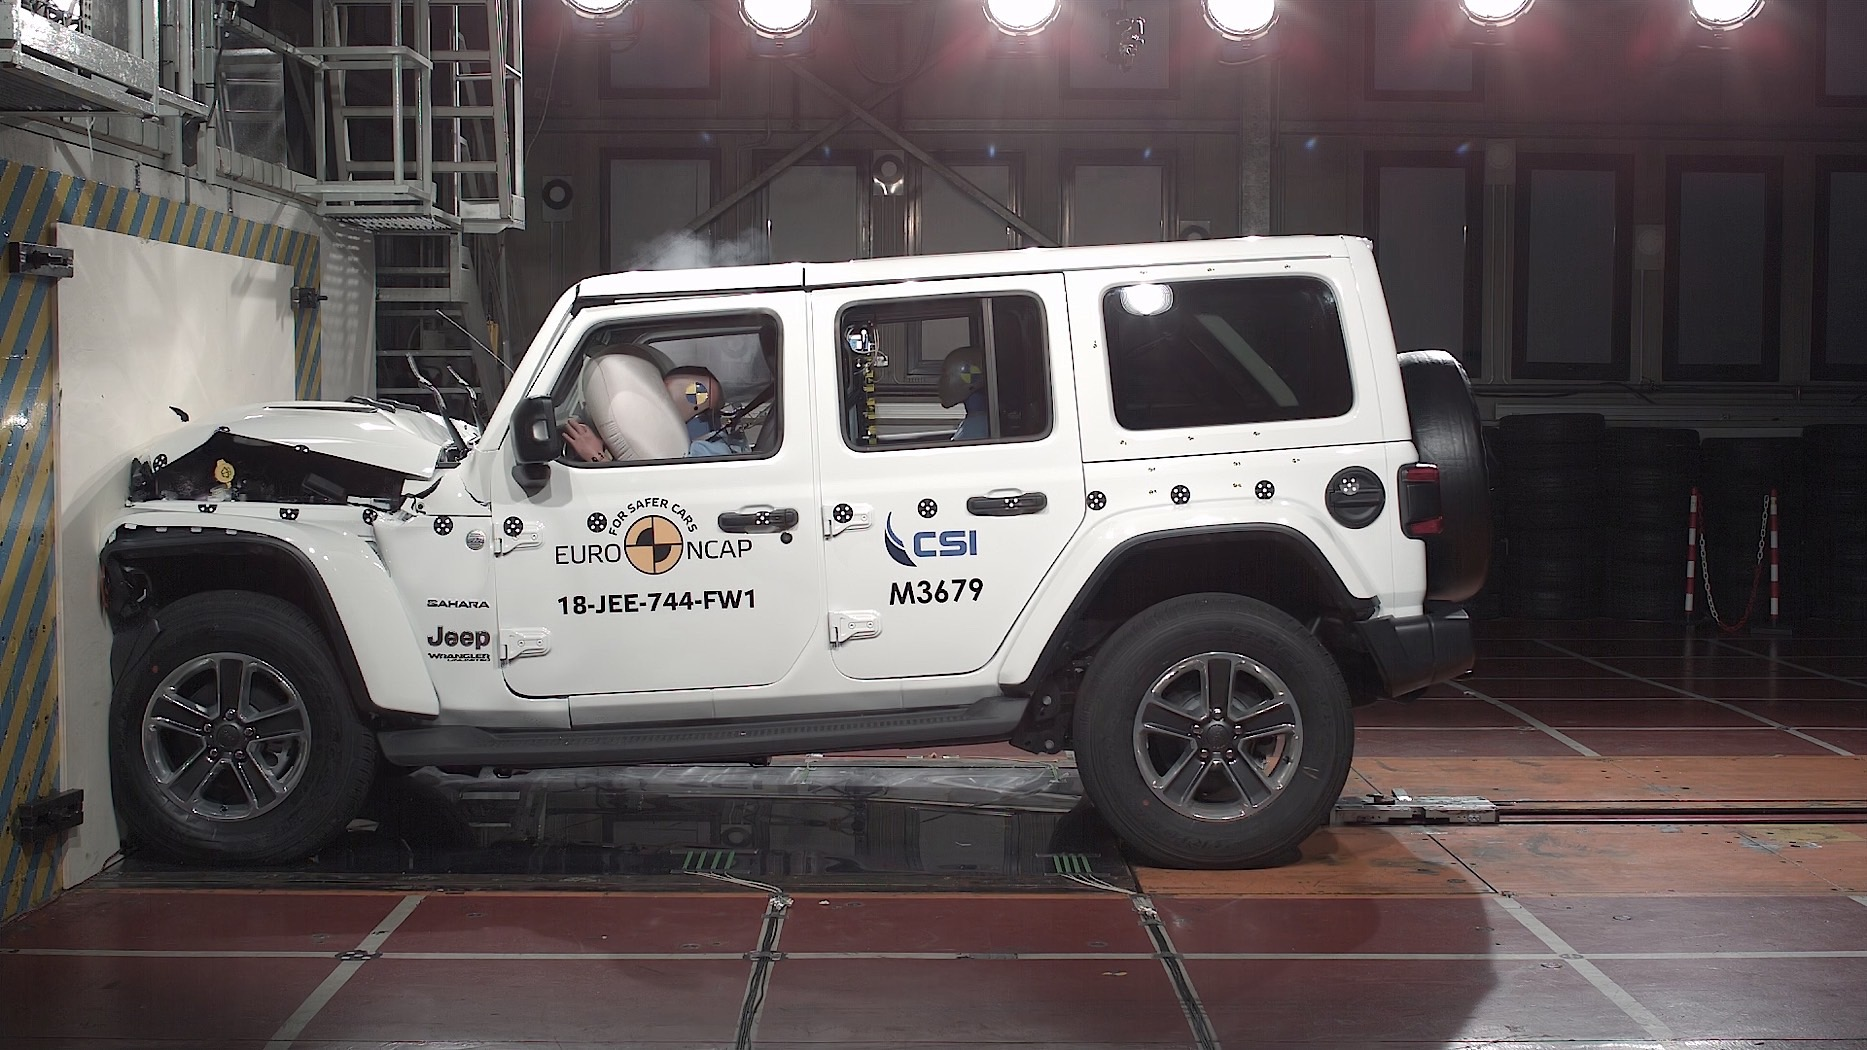 Jeep Wrangler scores 1 star in the Euro NCAP